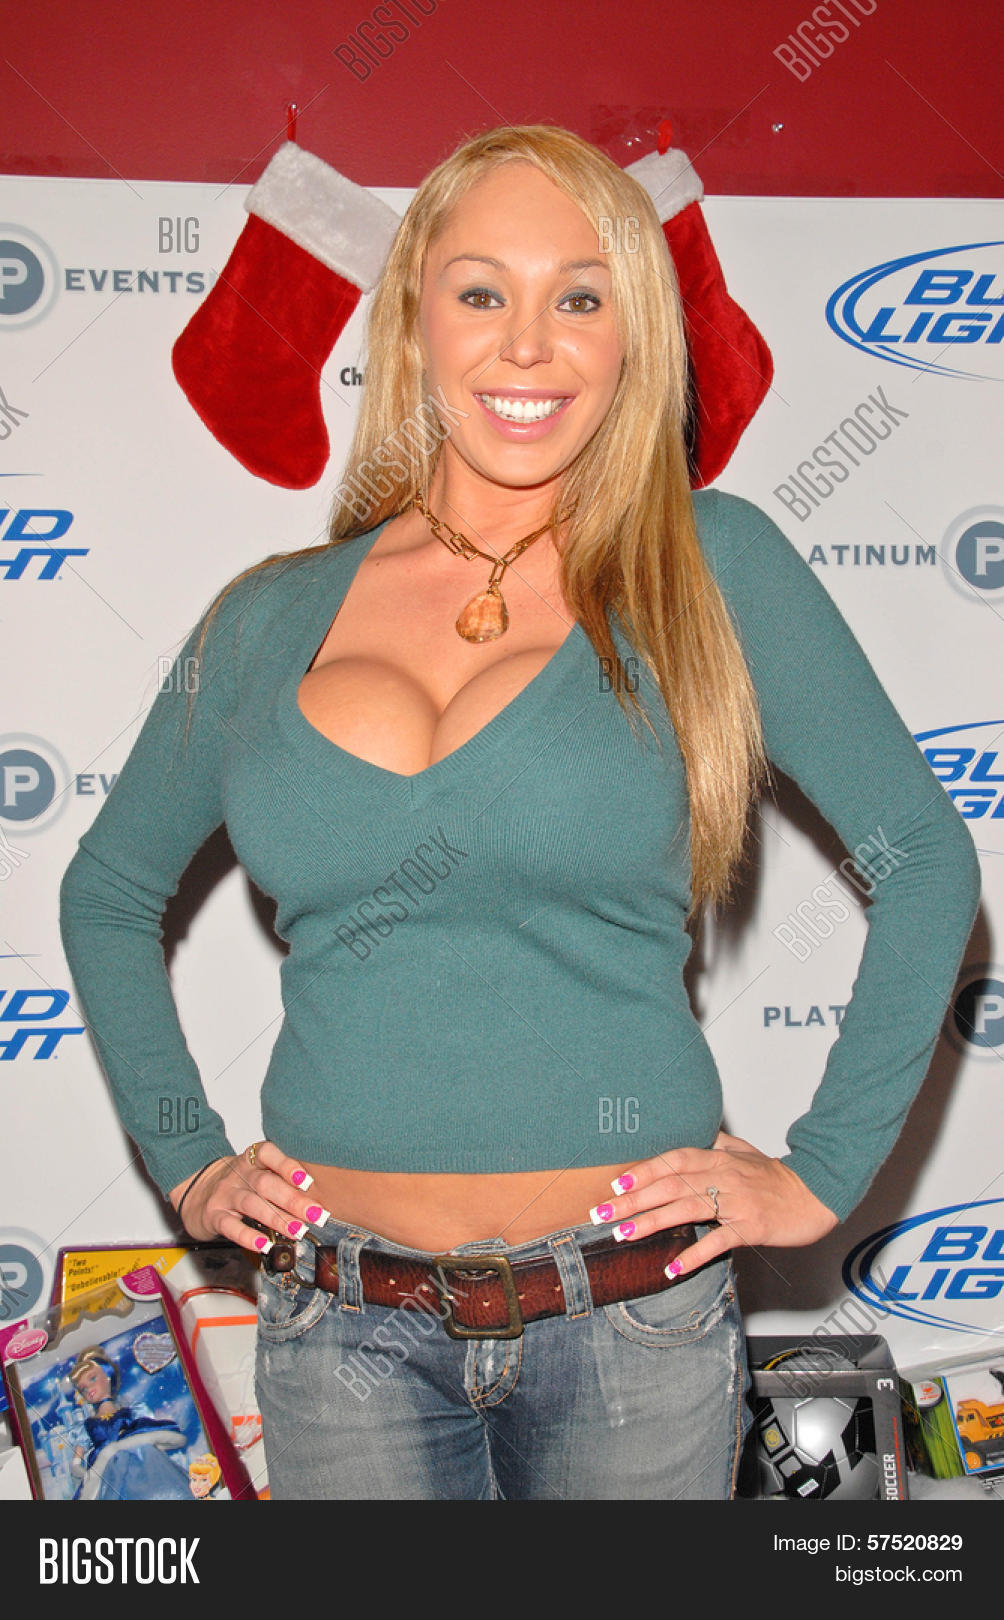 Images Mary Carey nudes (12 foto and video), Sexy, Paparazzi, Selfie, cleavage 2006